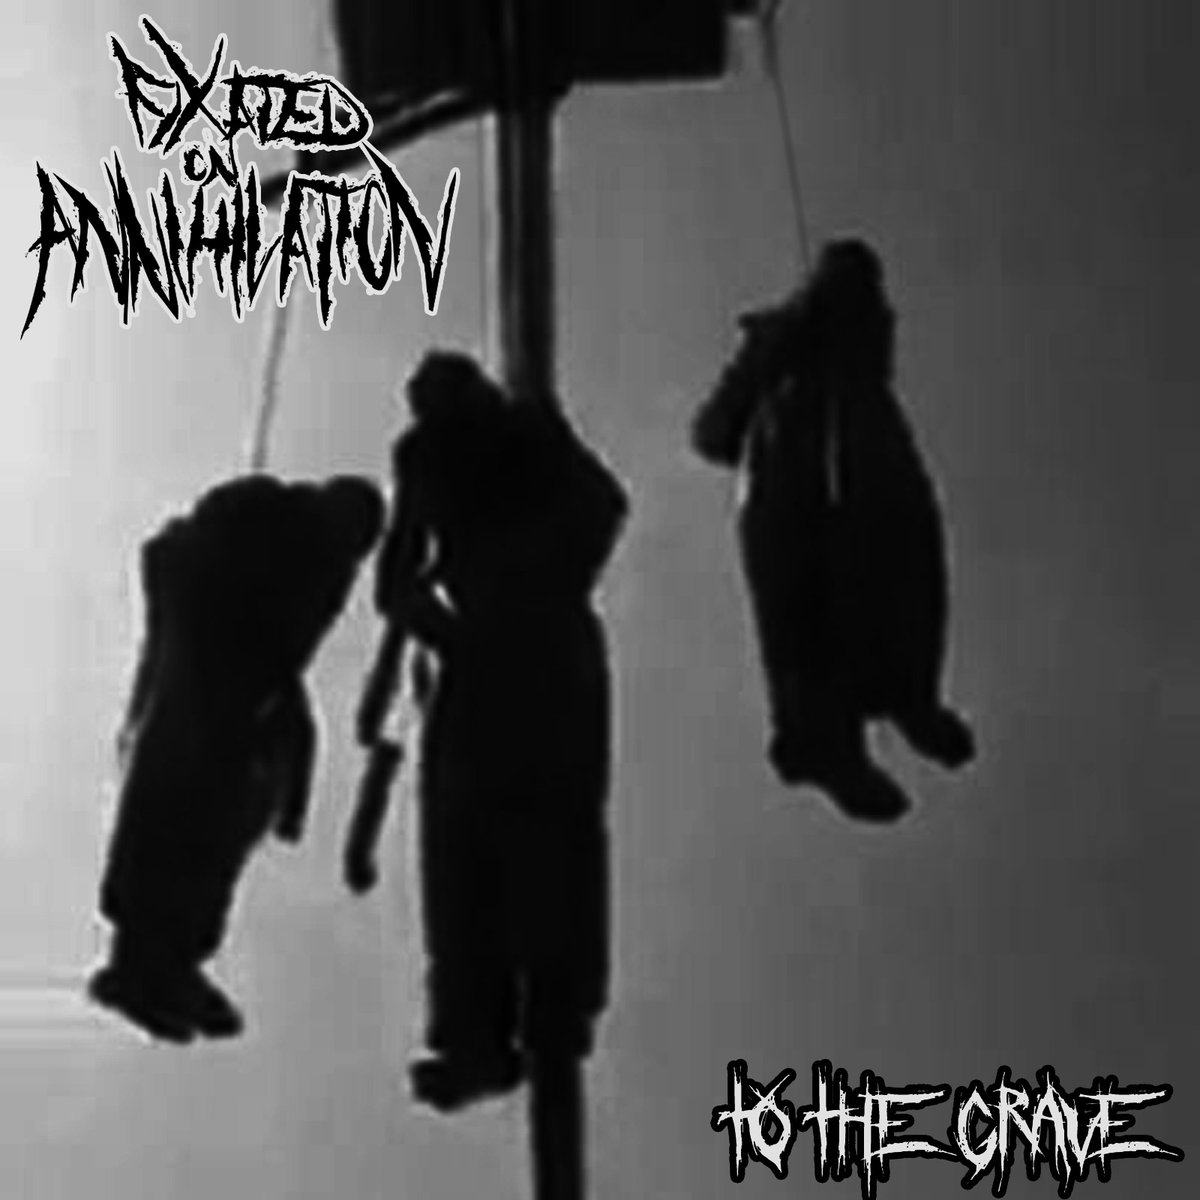 Fixated on Annihilation - To the Grave